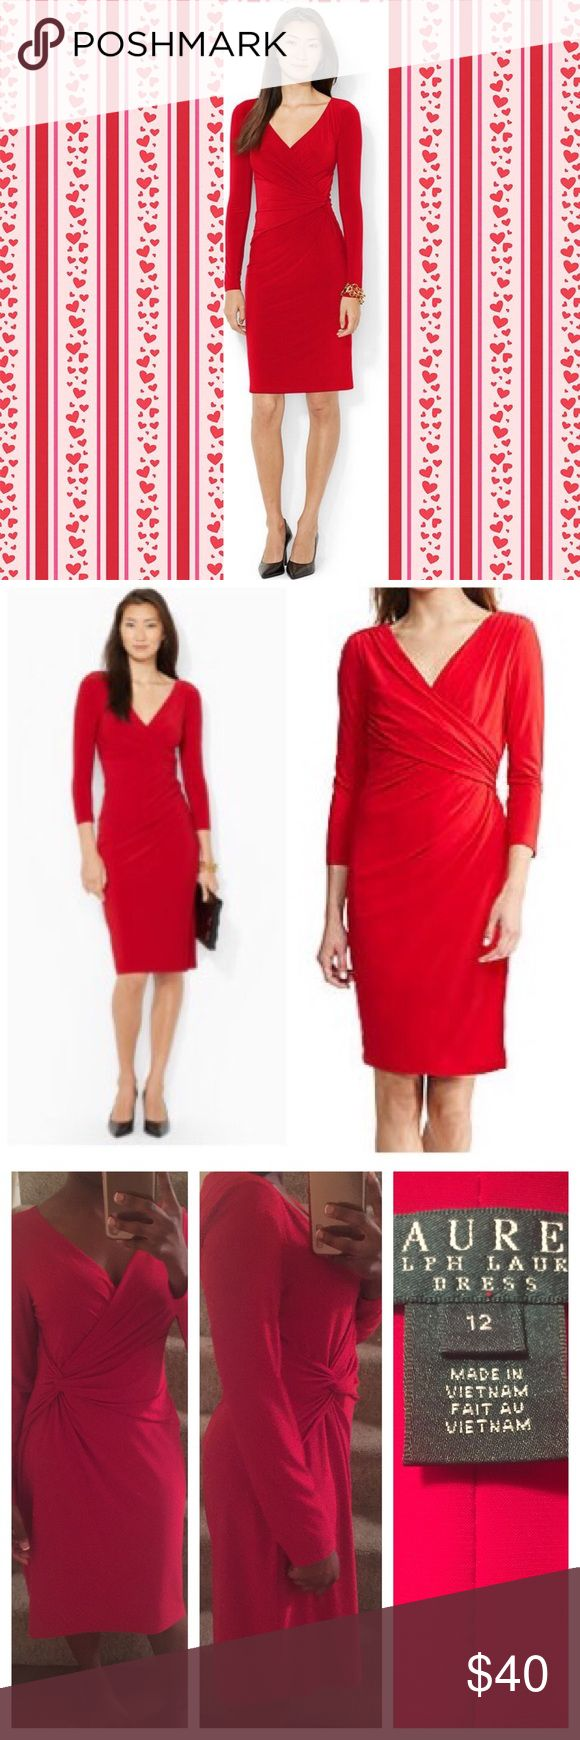 Red Wrap Midi Formal Dress Belonged to my mom. Great condition. Size 12       Tags: Michael kors, bcbgmaxazria, bebe, balenciaga, marc jacobs, diane von furstenberg, express, kate spade, asos, zara, french connection, tahari, st. john, free people, theory, j. Crew, isabel marant, balmain, alexander wang, vera wang, dior, bebe, worthington, ann taylor, loft, talbots, chico's ralph lauren Lauren Ralph Lauren Dresses